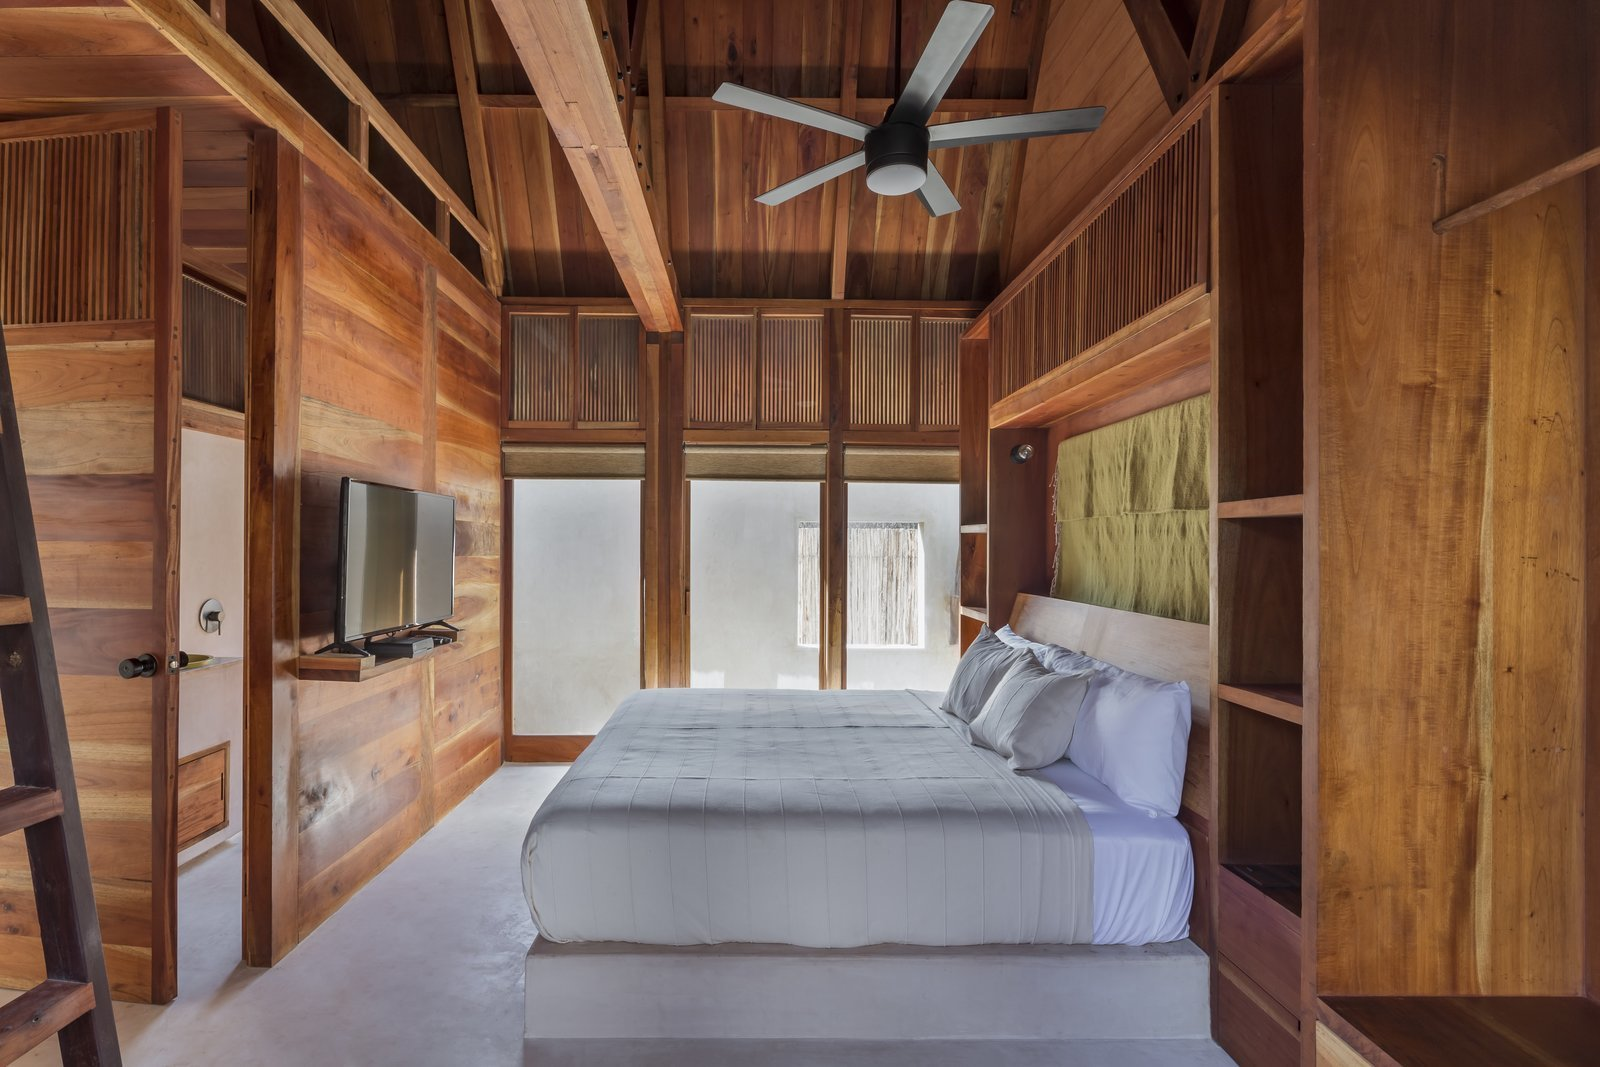 The guest rooms were all built from Western red cedar, which was sourced from the family's plantation.